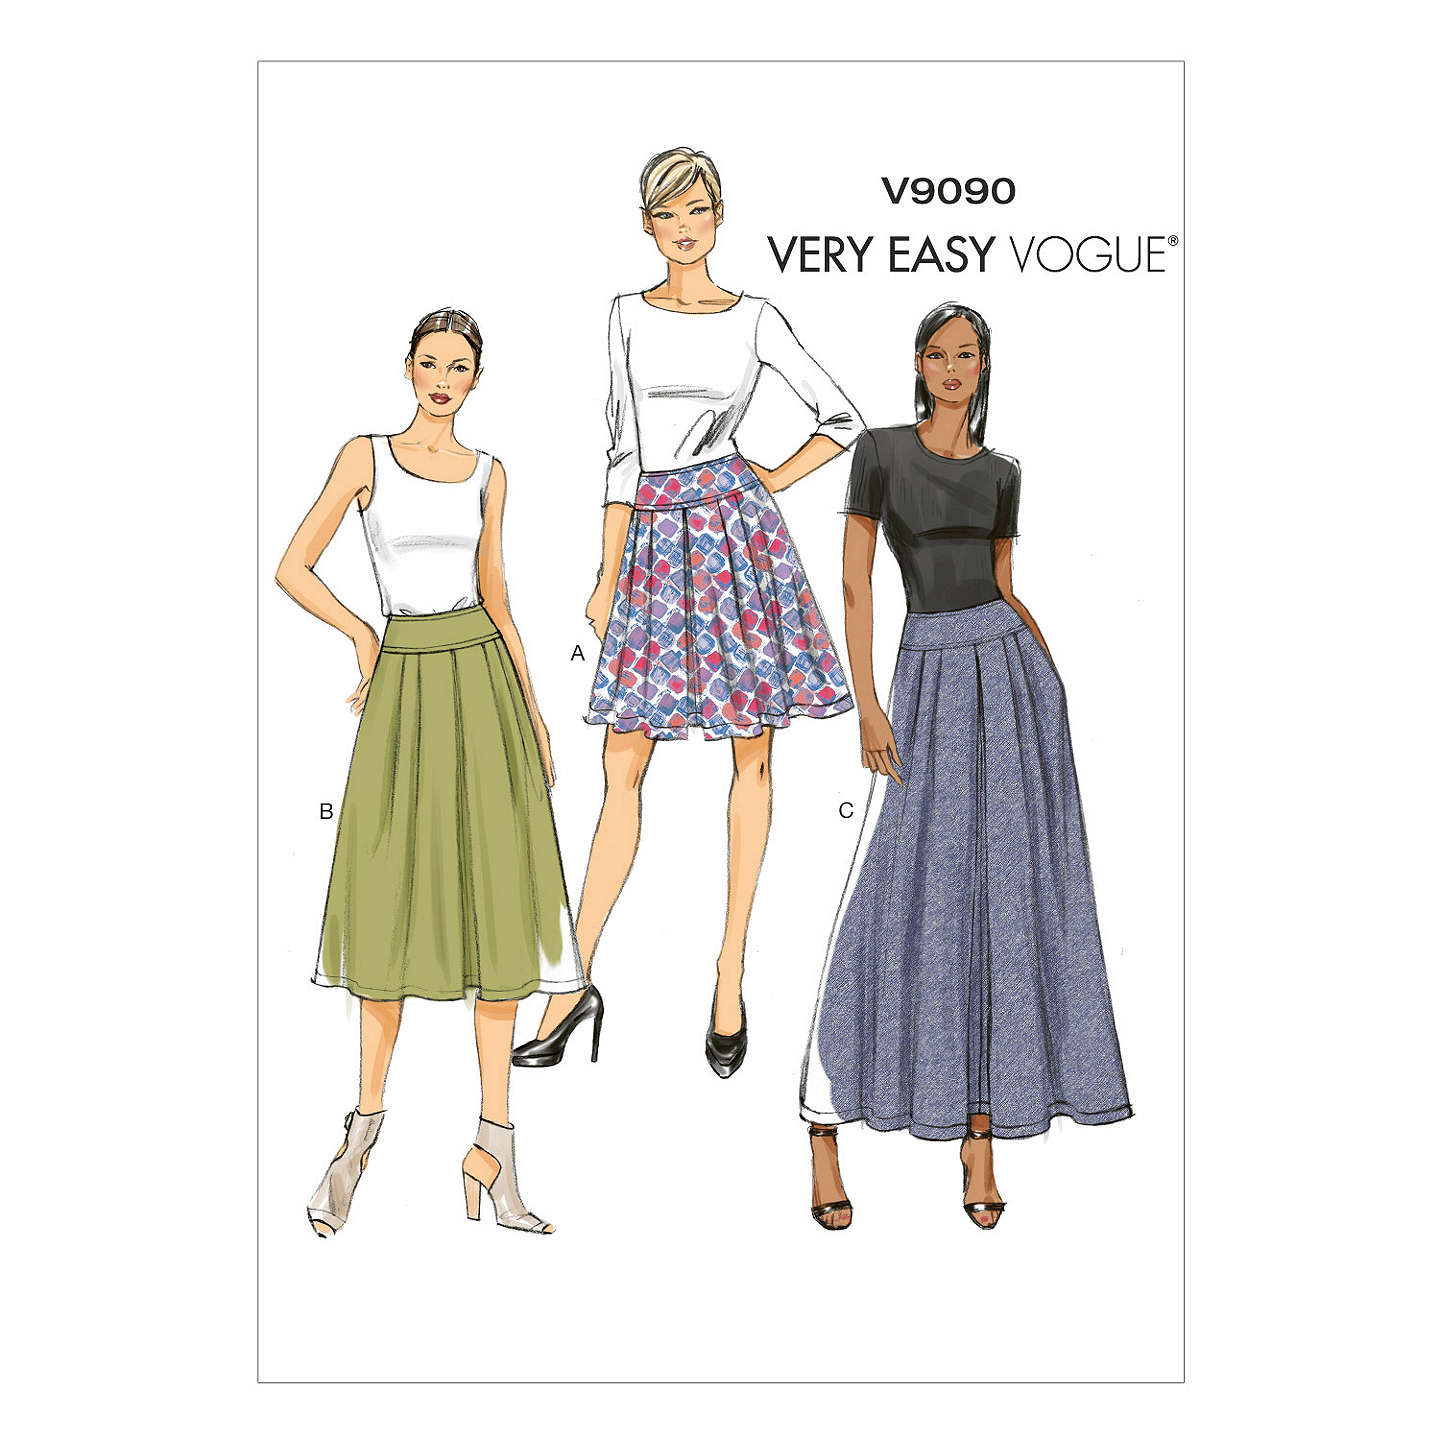 Vogue Very Easy Pleated Skirt Sewing Pattern, 9090 at John Lewis